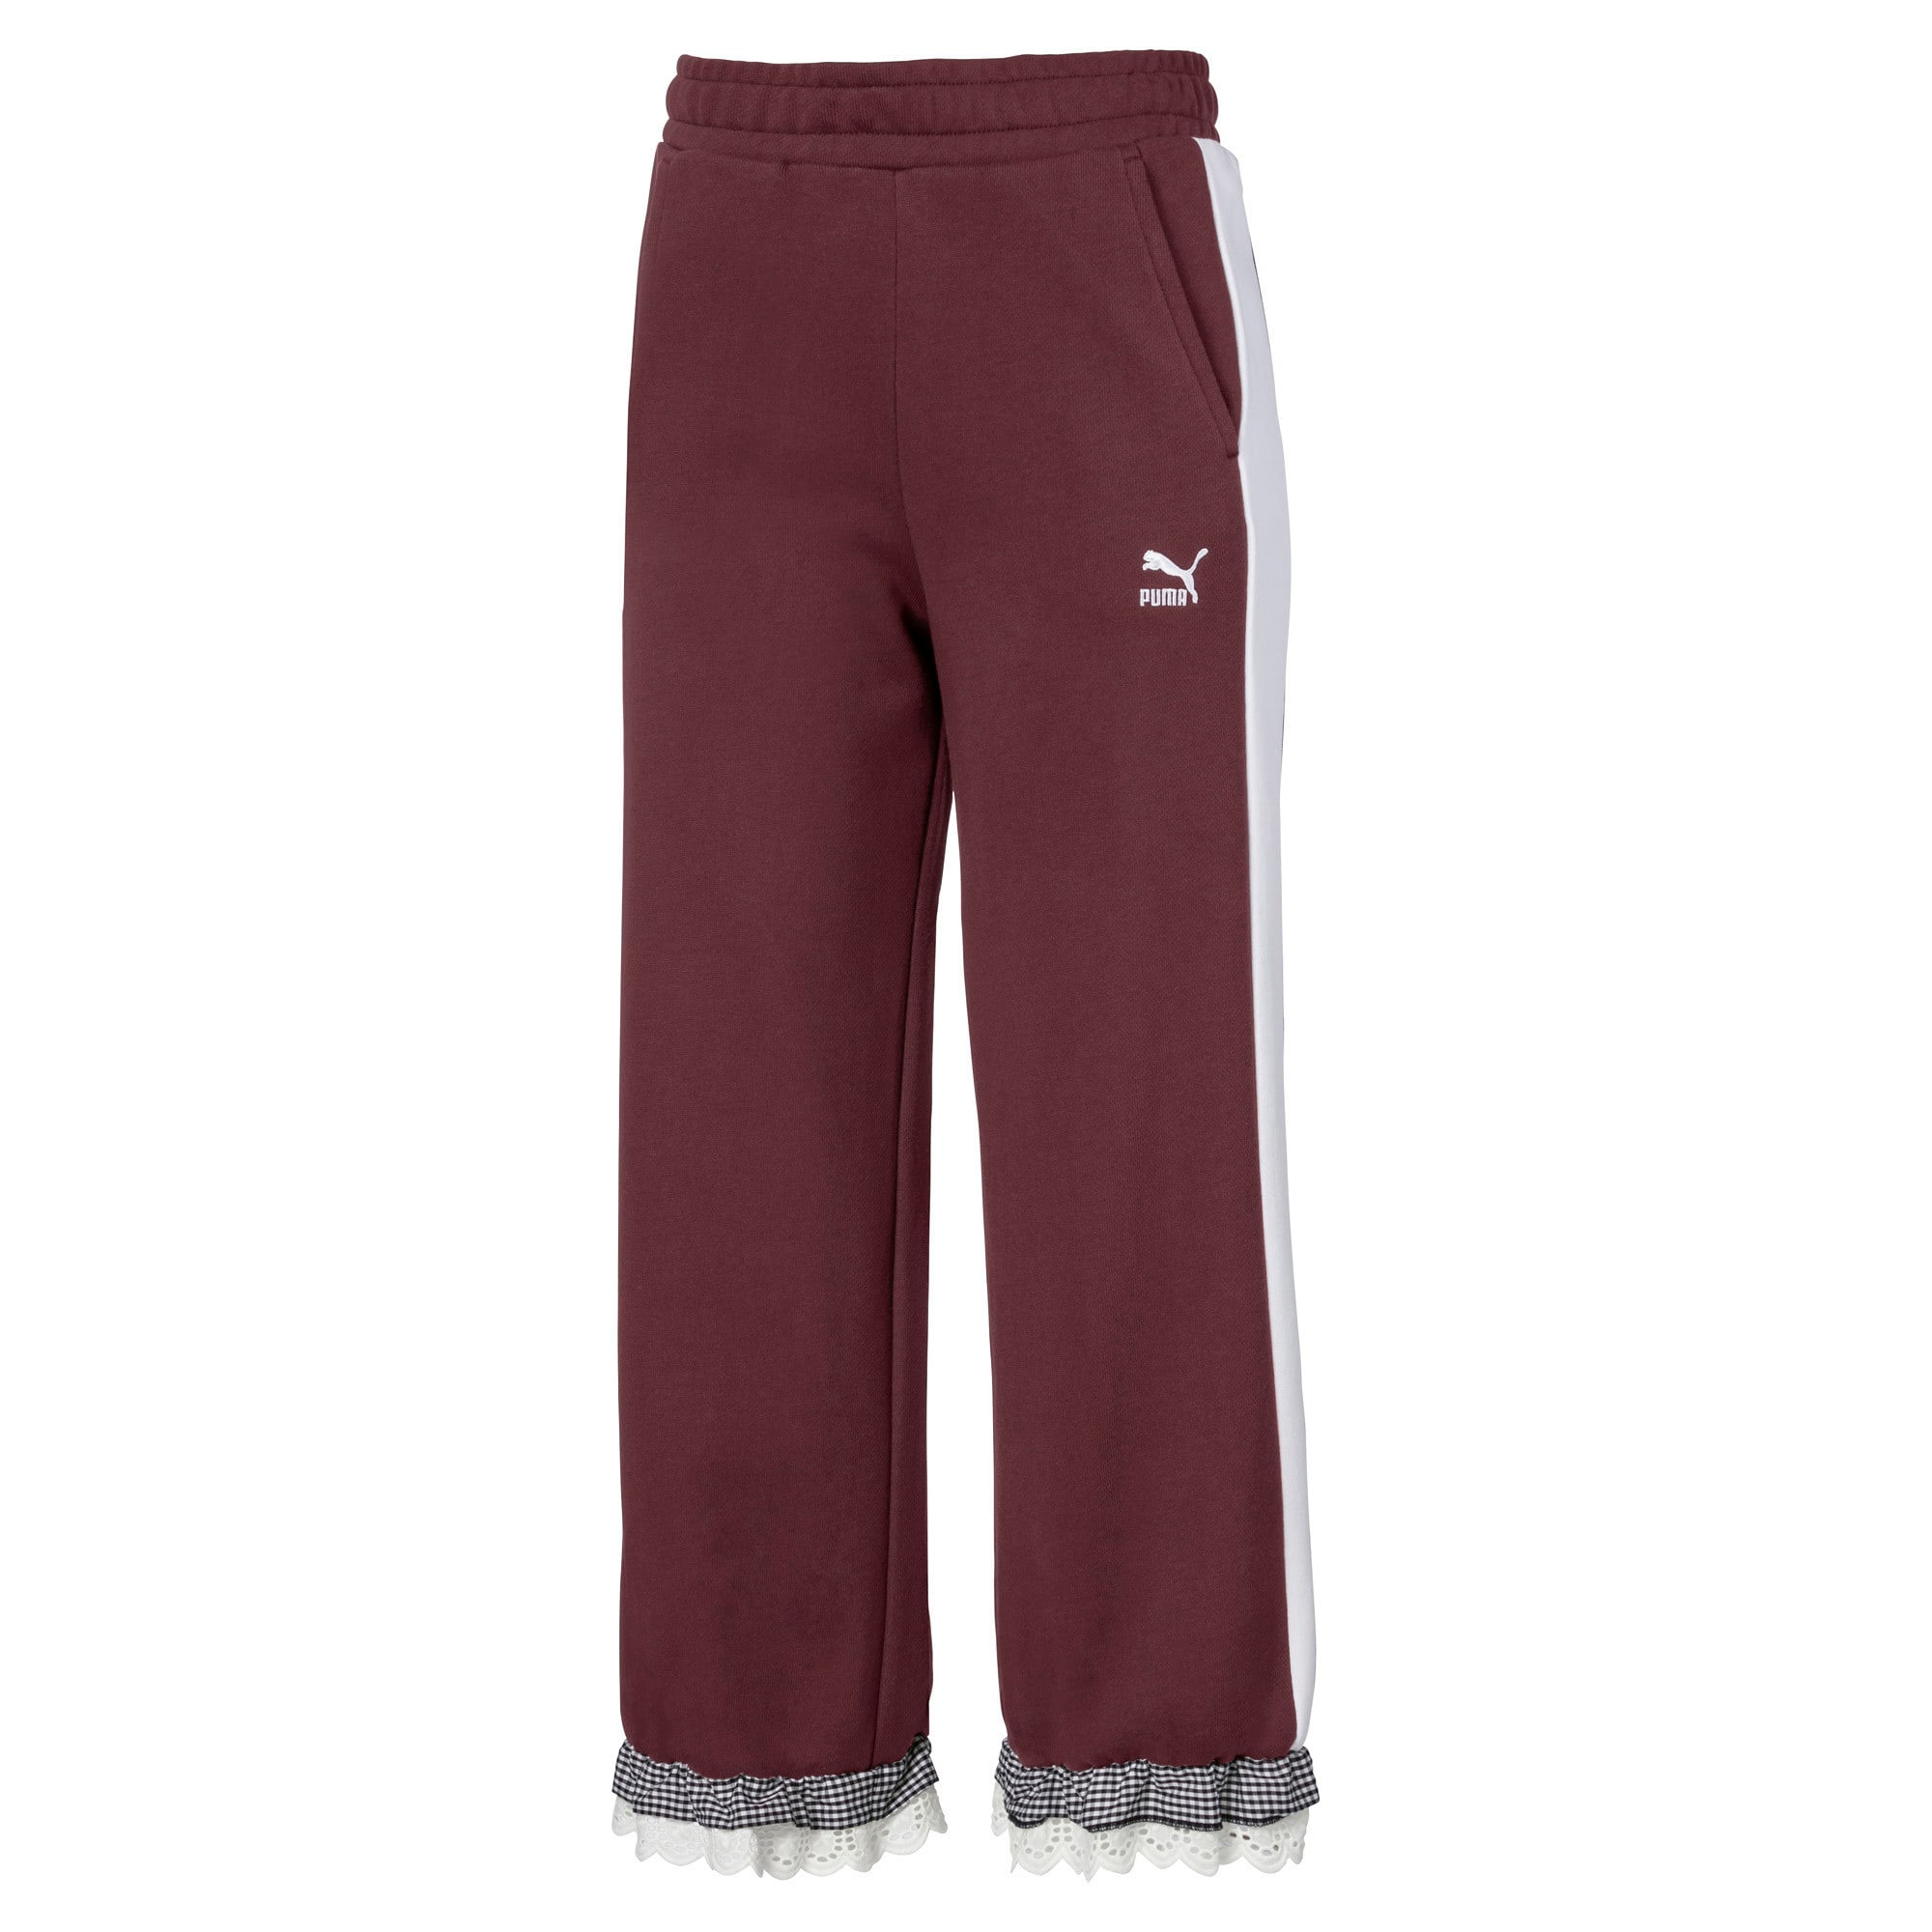 Thumbnail 1 of PUMA x TYAKASHA Knitted Women's Culottes, Vineyard Wine, medium